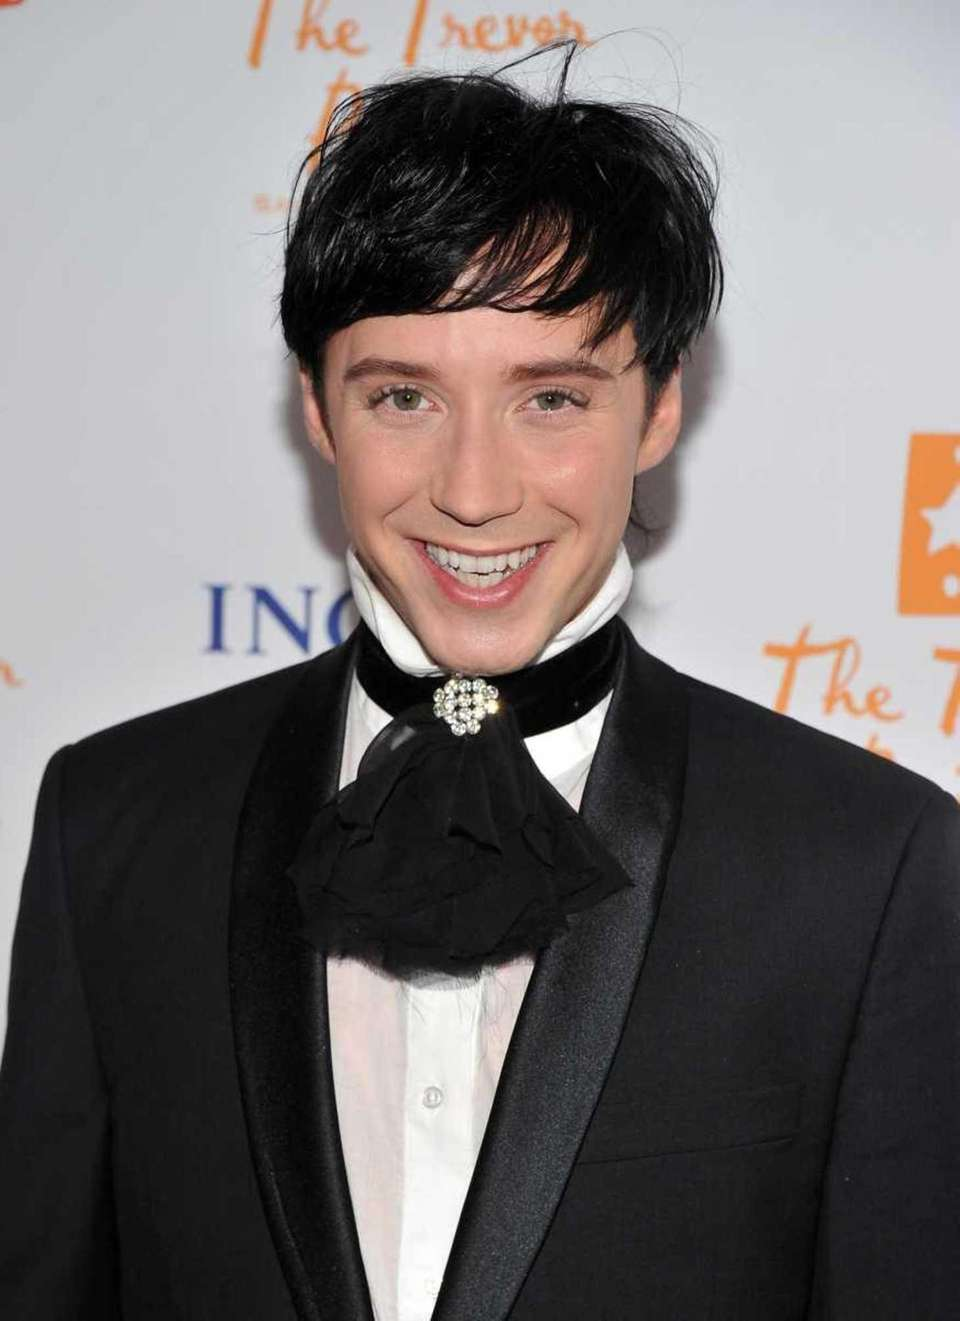 A documentary of Johnny Weir's career and life